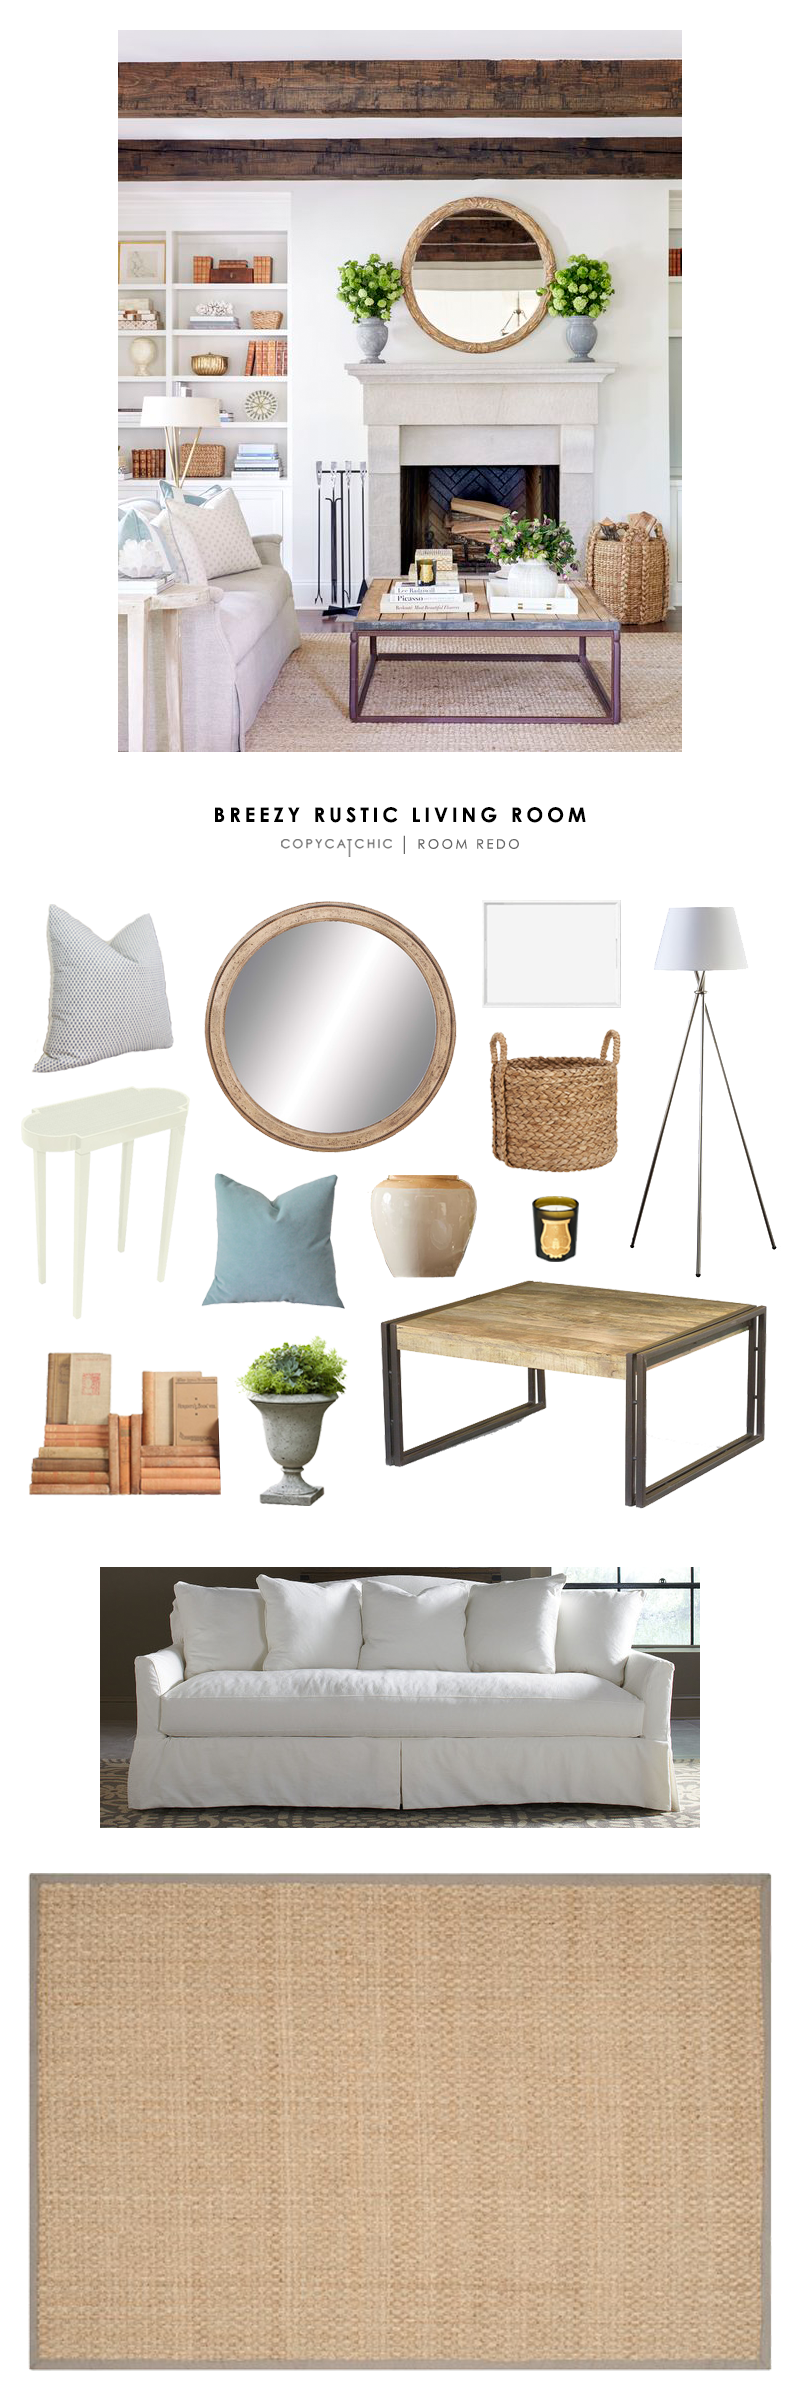 Copy Cat Chic Room Redo | Breezy Rustic Living Room - copycatchic